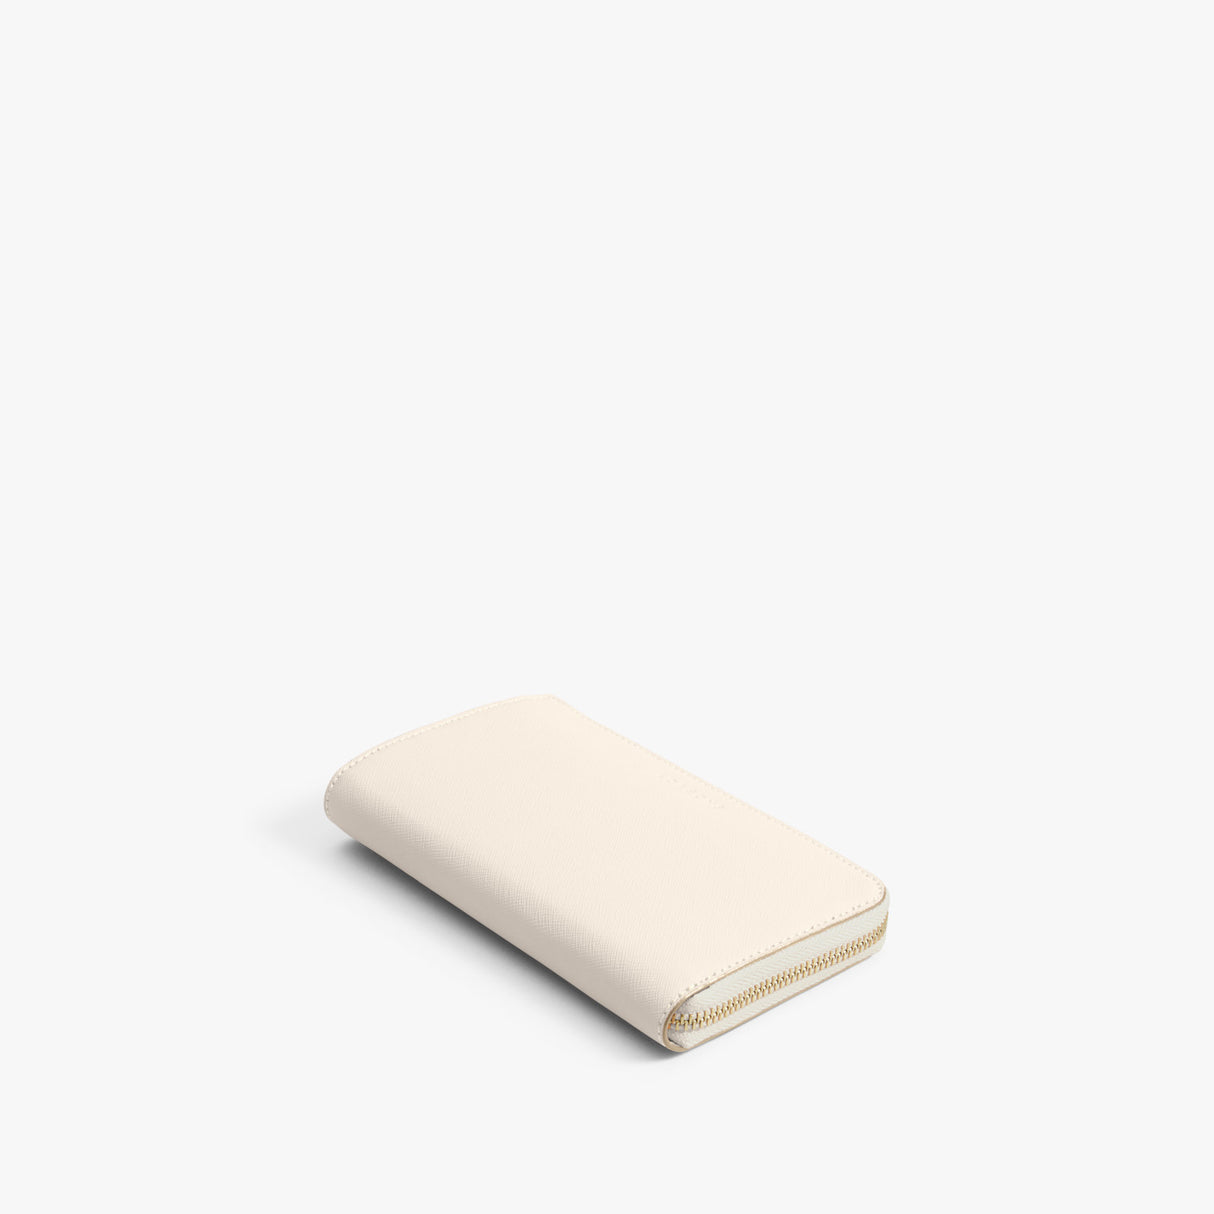 Front - The Leather Wallet - Saffiano Leather - Ivory / Gold / Camel - Small Accessory - Lo & Sons